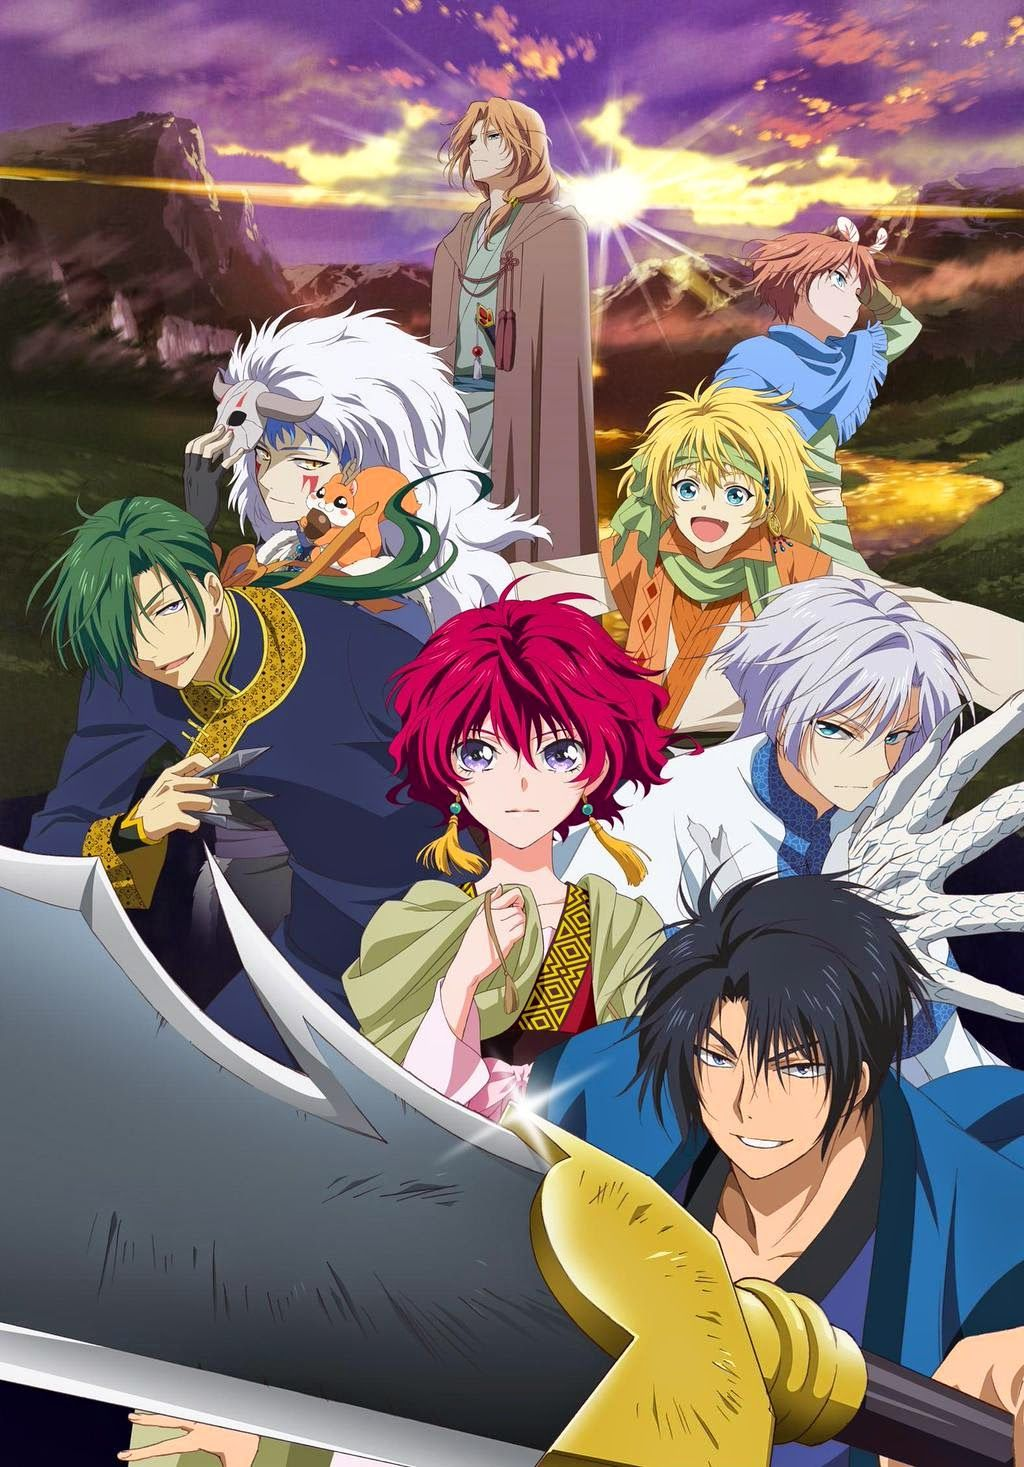 Akatsuki no yona genres action adventure comedy fantasy romance shoujo